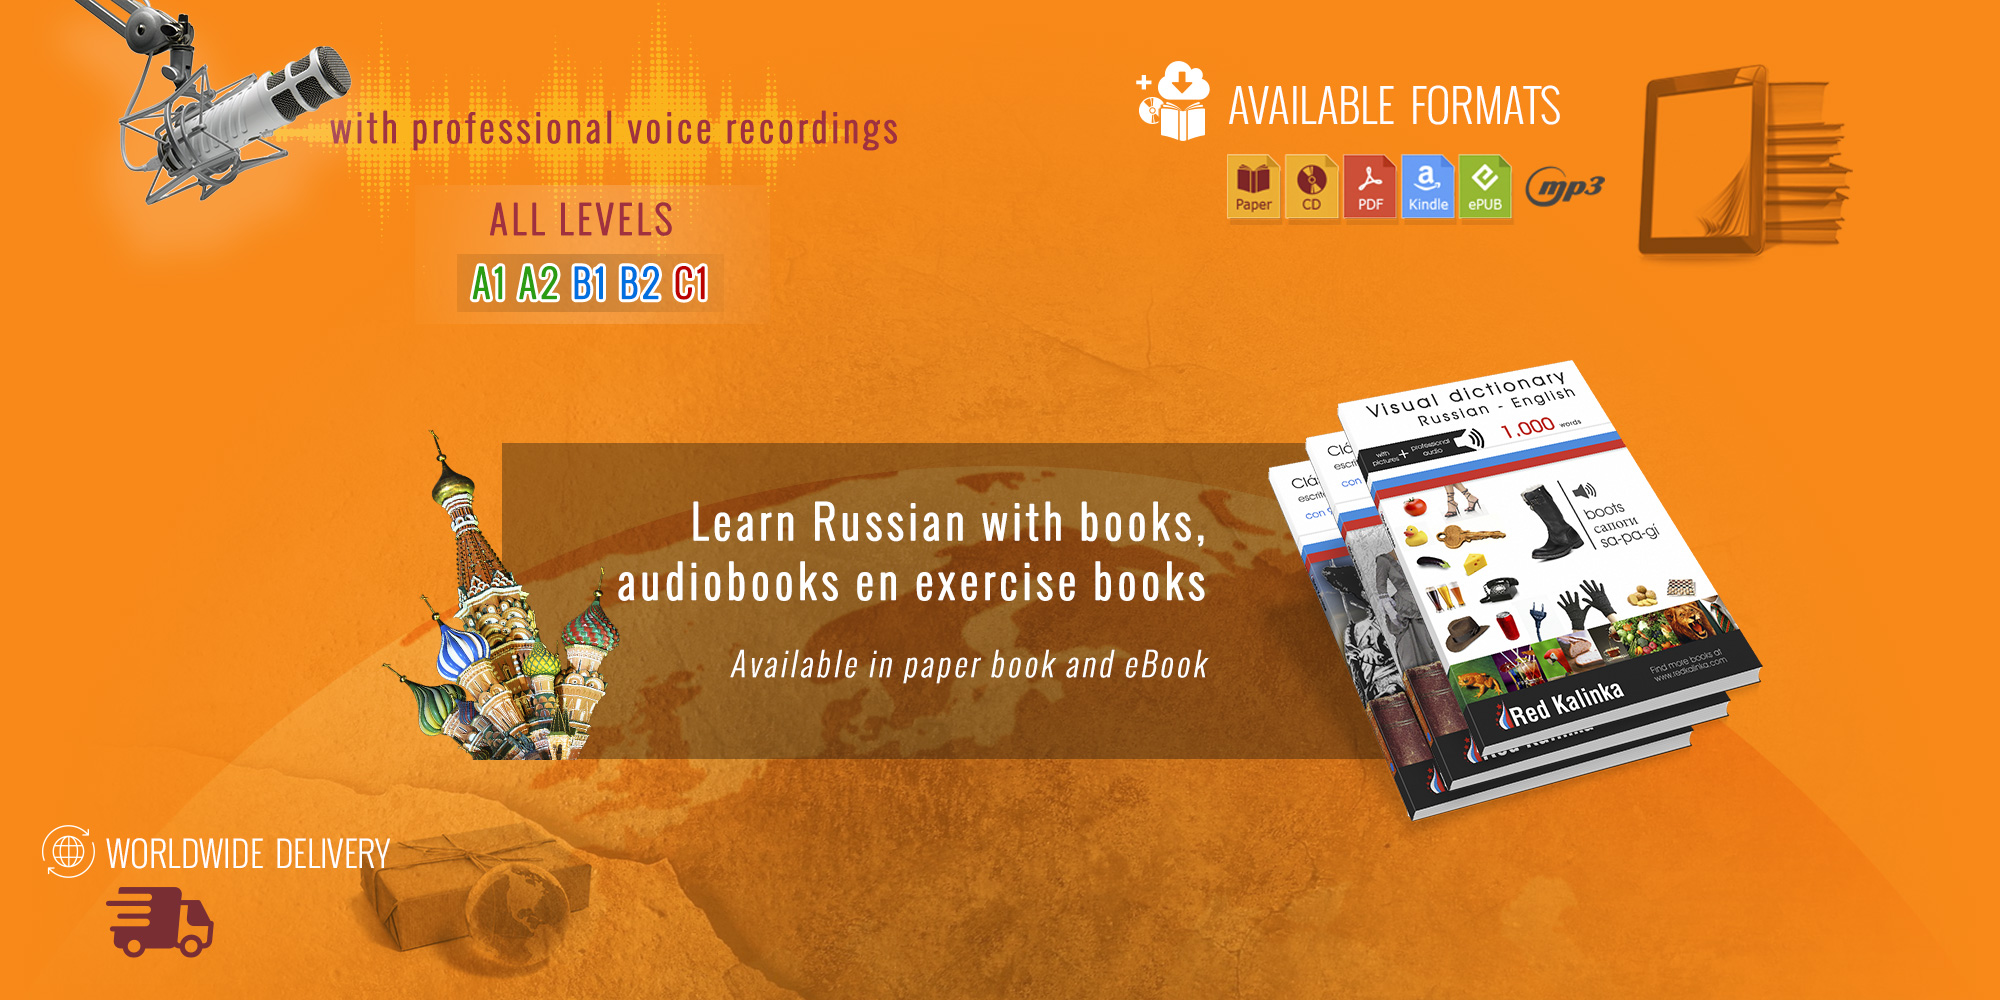 Learn with Ebooks